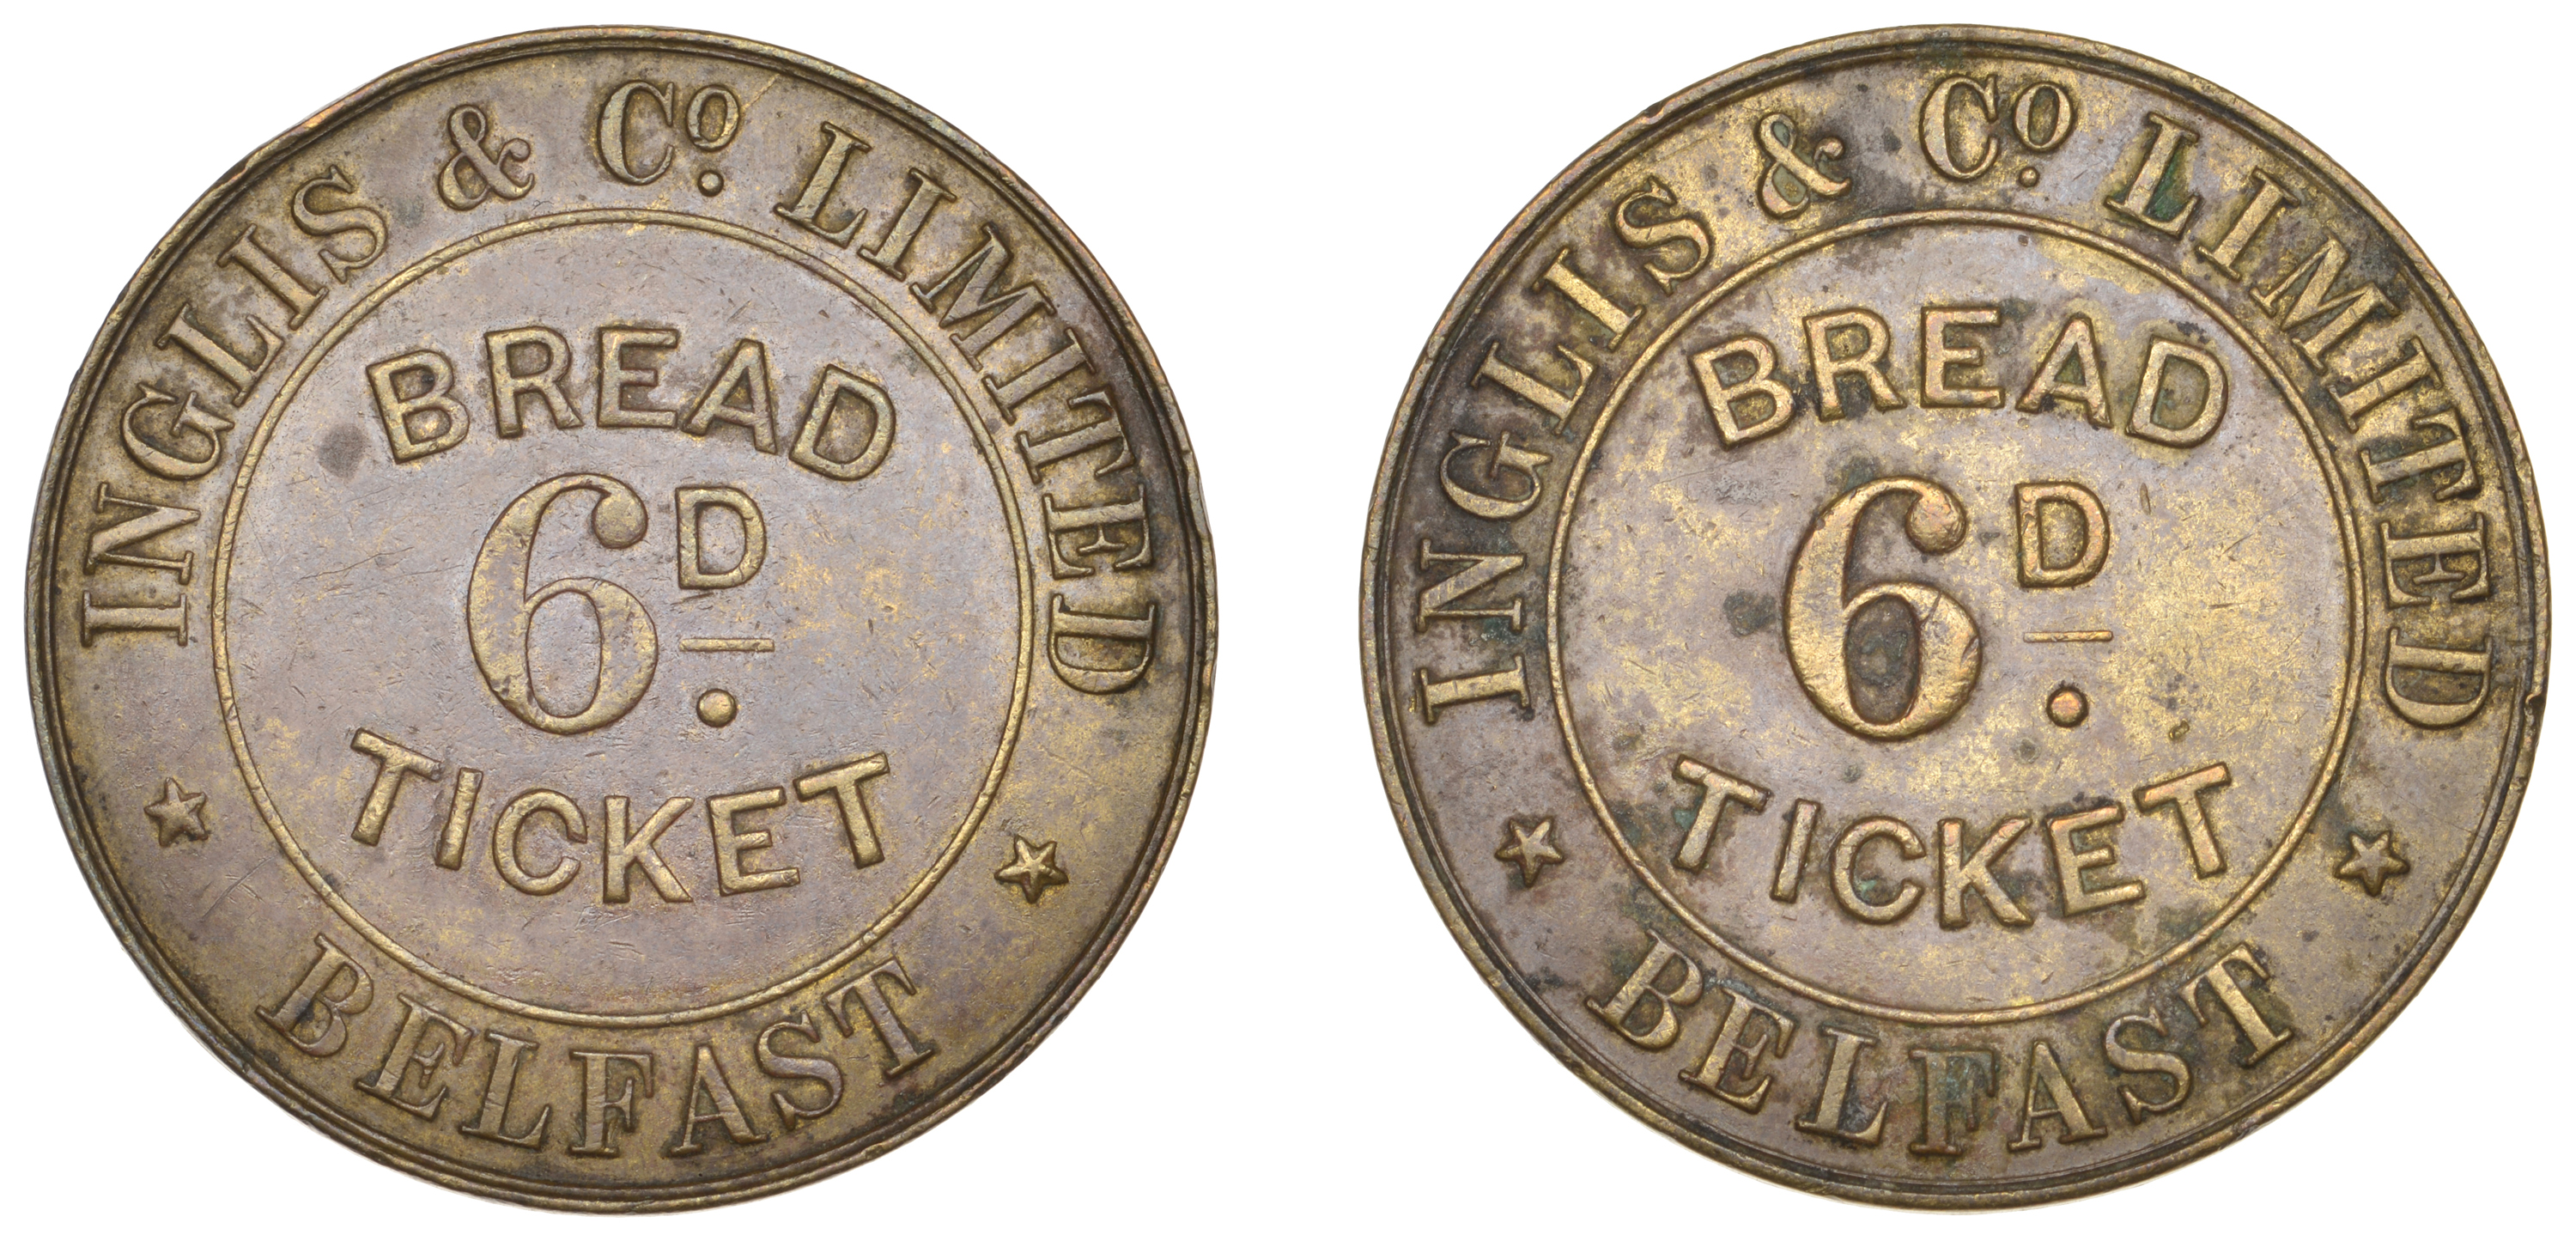 Irish Tokens from the Collection of the late Barry Woodside